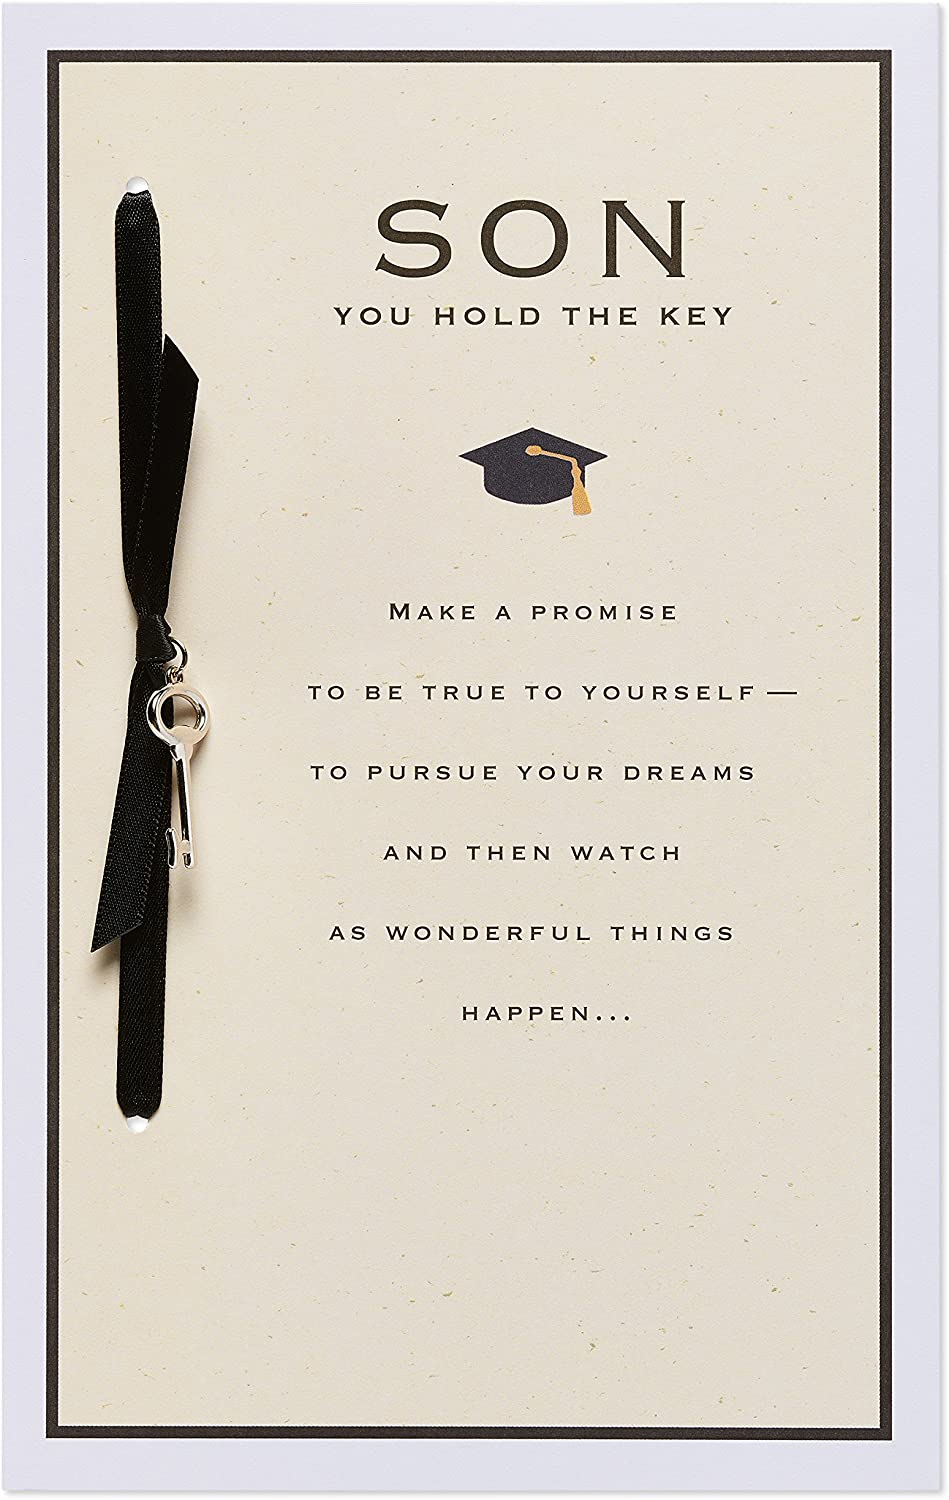 American Greetings Graduation Card for Son (You Hold The Key)